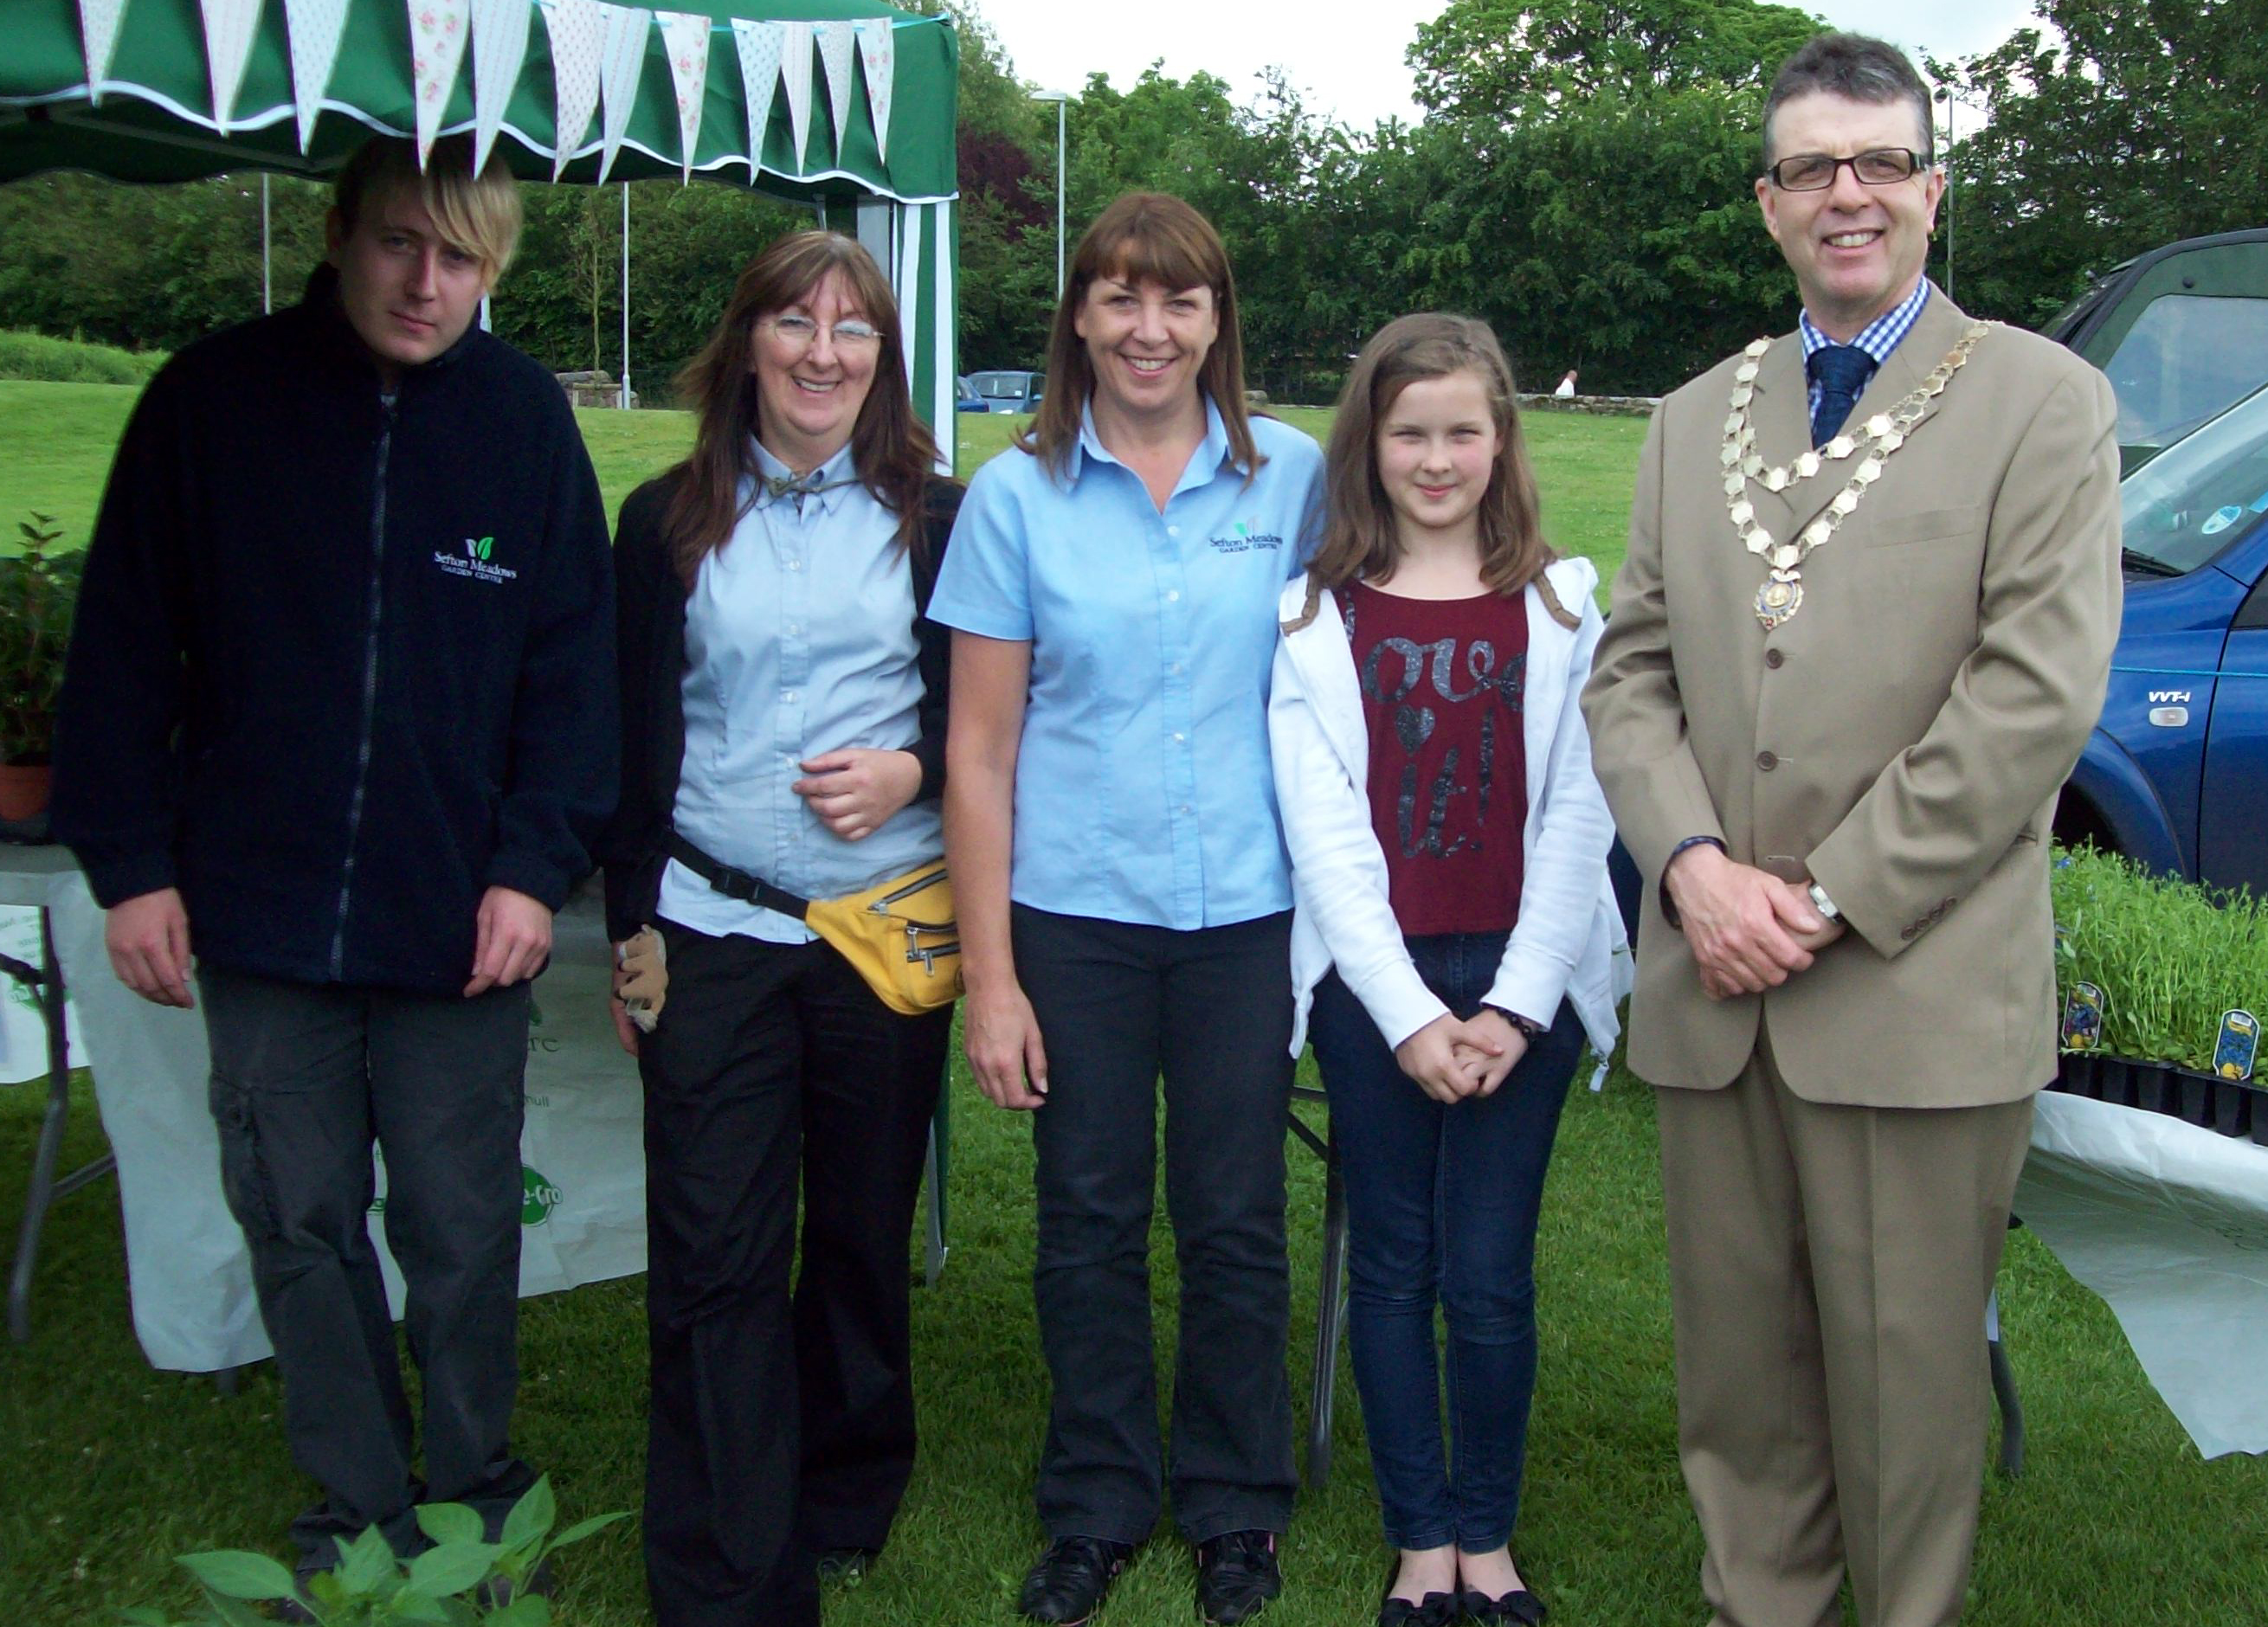 Mayor of Maghull, Labour's Cllr Steve Kermode with the Sefton Meadows Garden Centre Team.